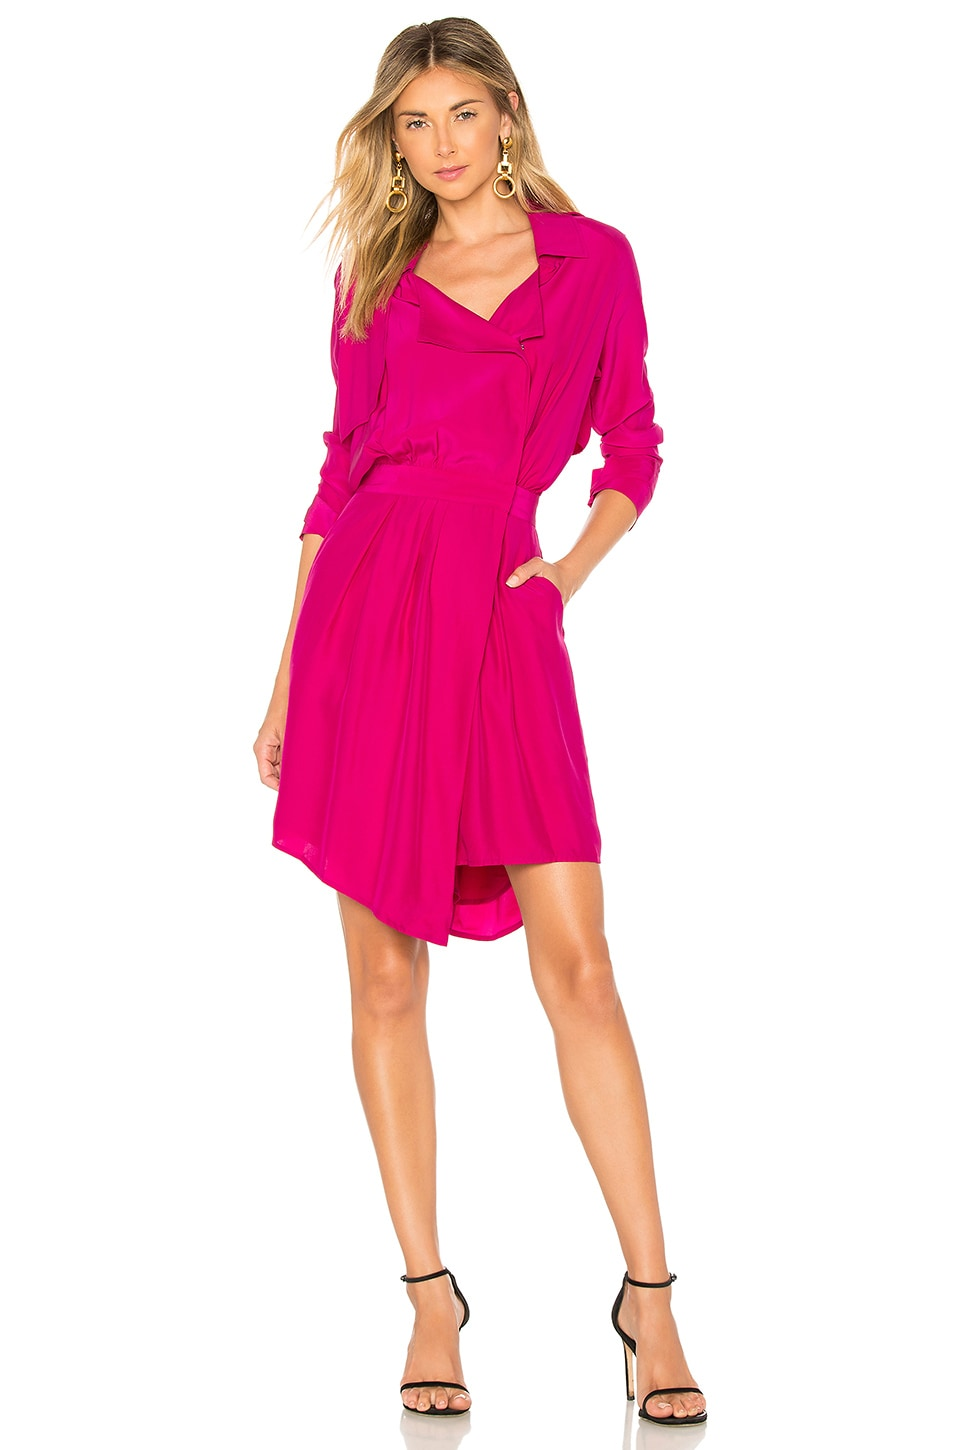 ICONS Objects of Devotion The Trench Dress in Fuchsia